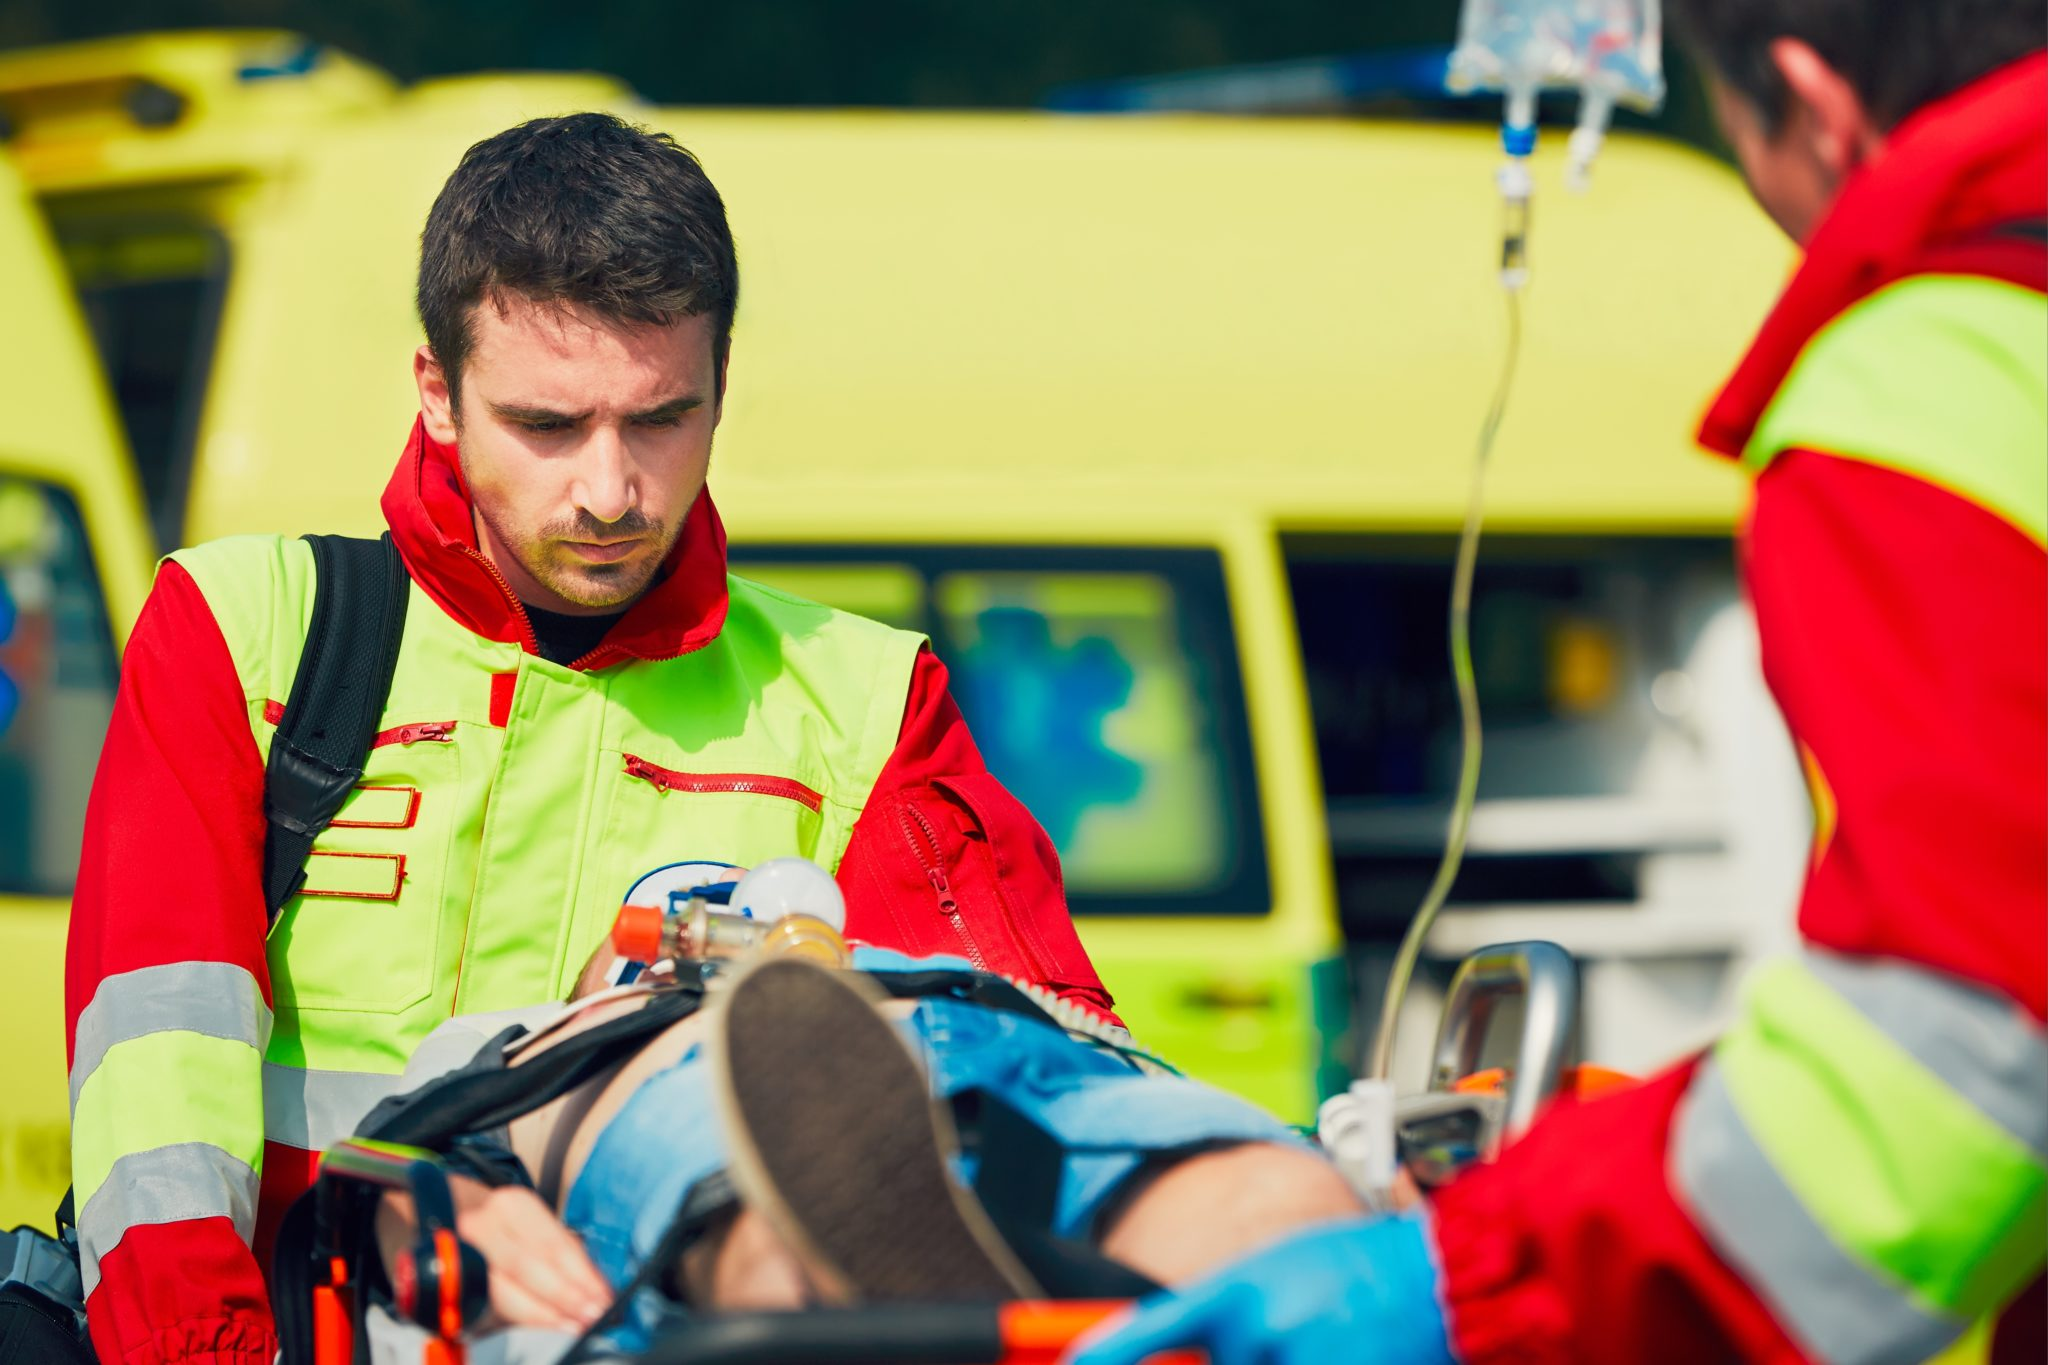 Become an Emergency Medical Technician